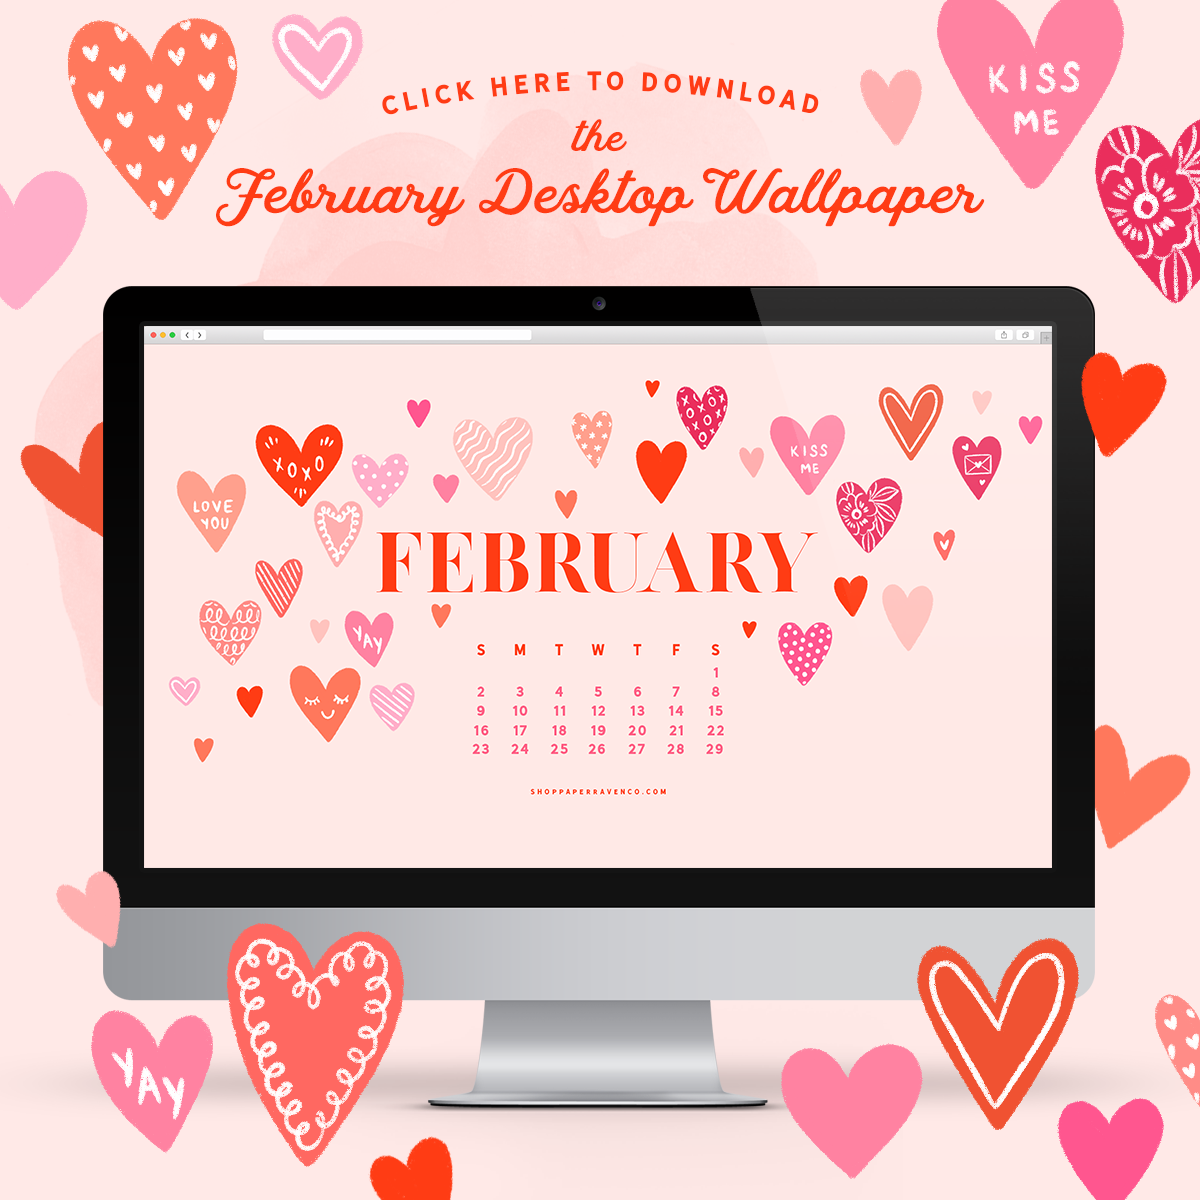 February 2020 Illustrated Desktop Wallpaper by Paper Raven Co. | www.ShopPaperRavenCo.com #desktopwallpaper #dressyourtech #desktopdownload